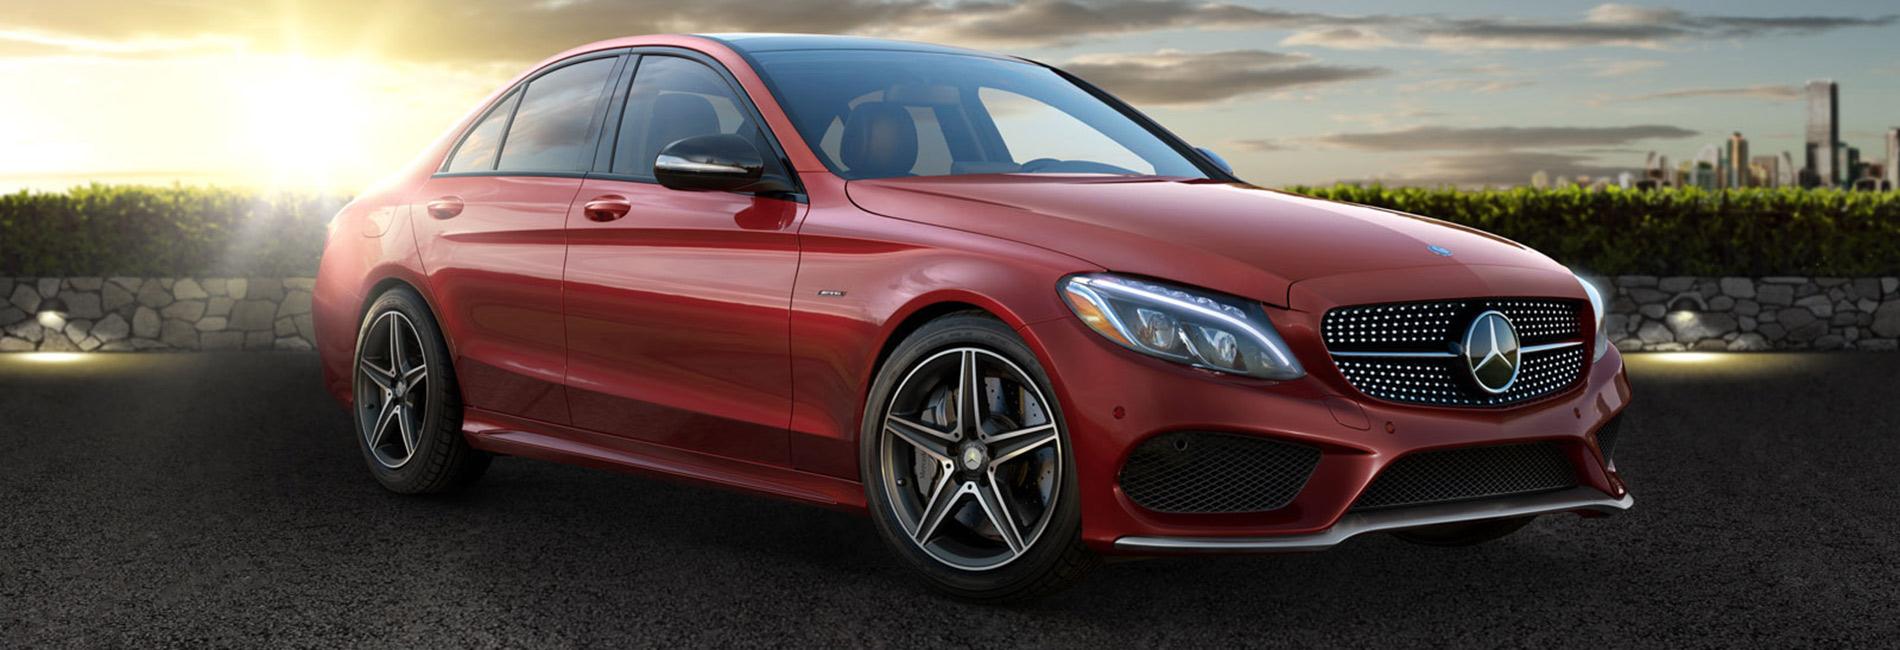 First class lease mercedes benz of palm springs for Mercedes benz of palm springs